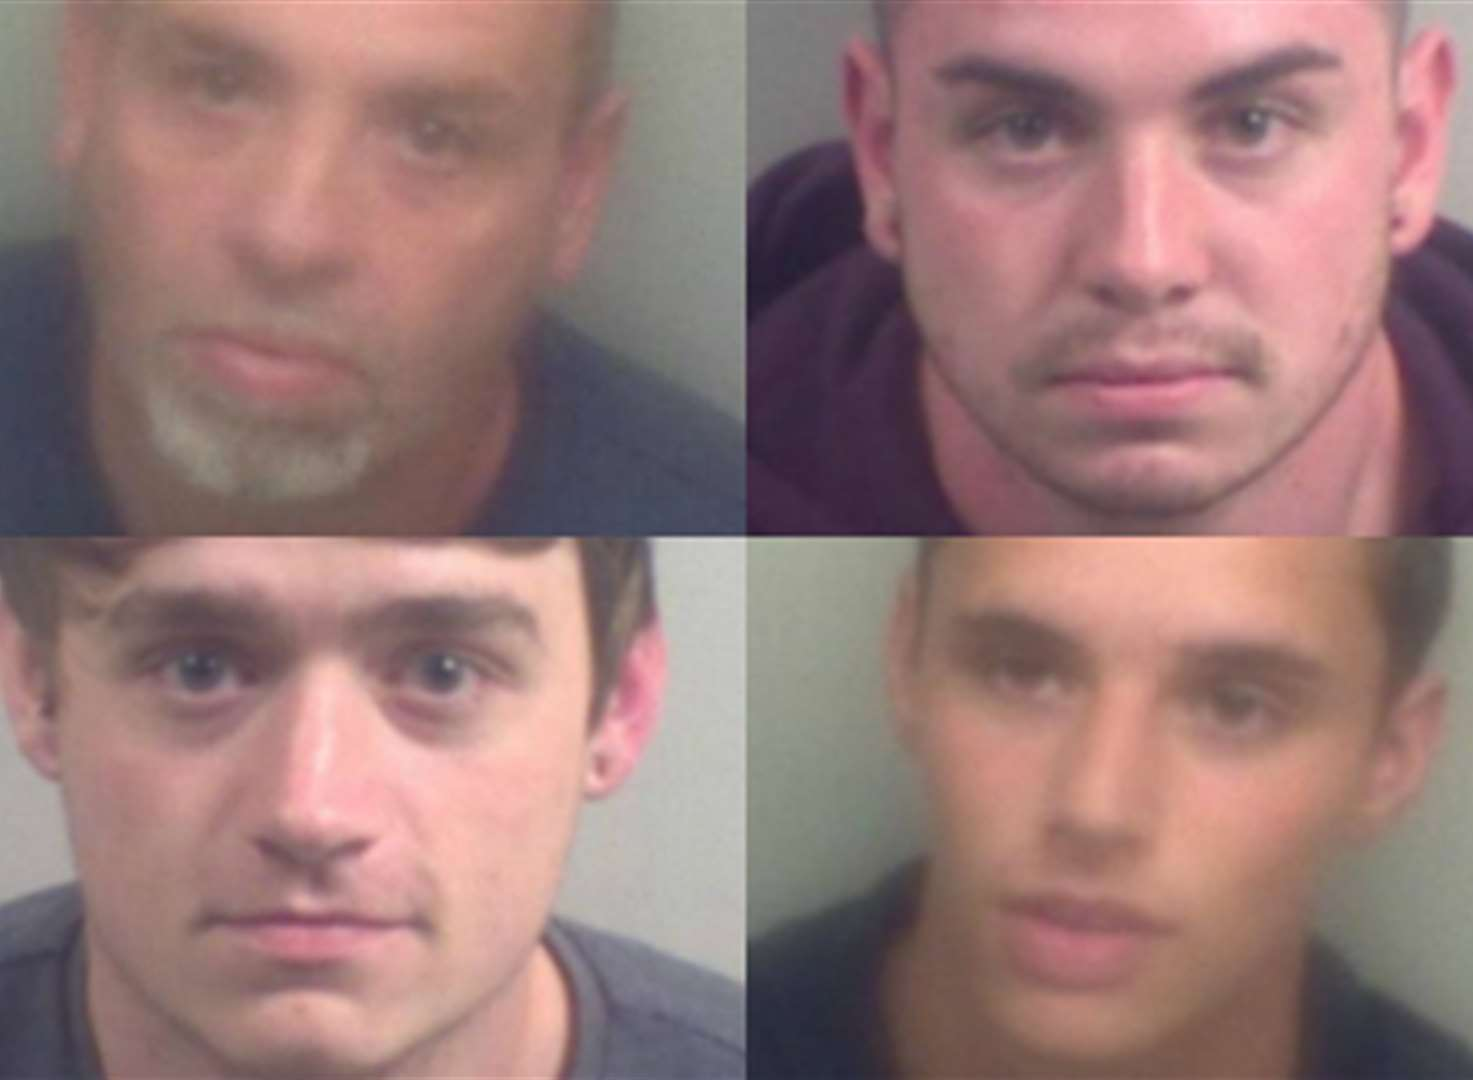 Four locked up for life after beating man to death